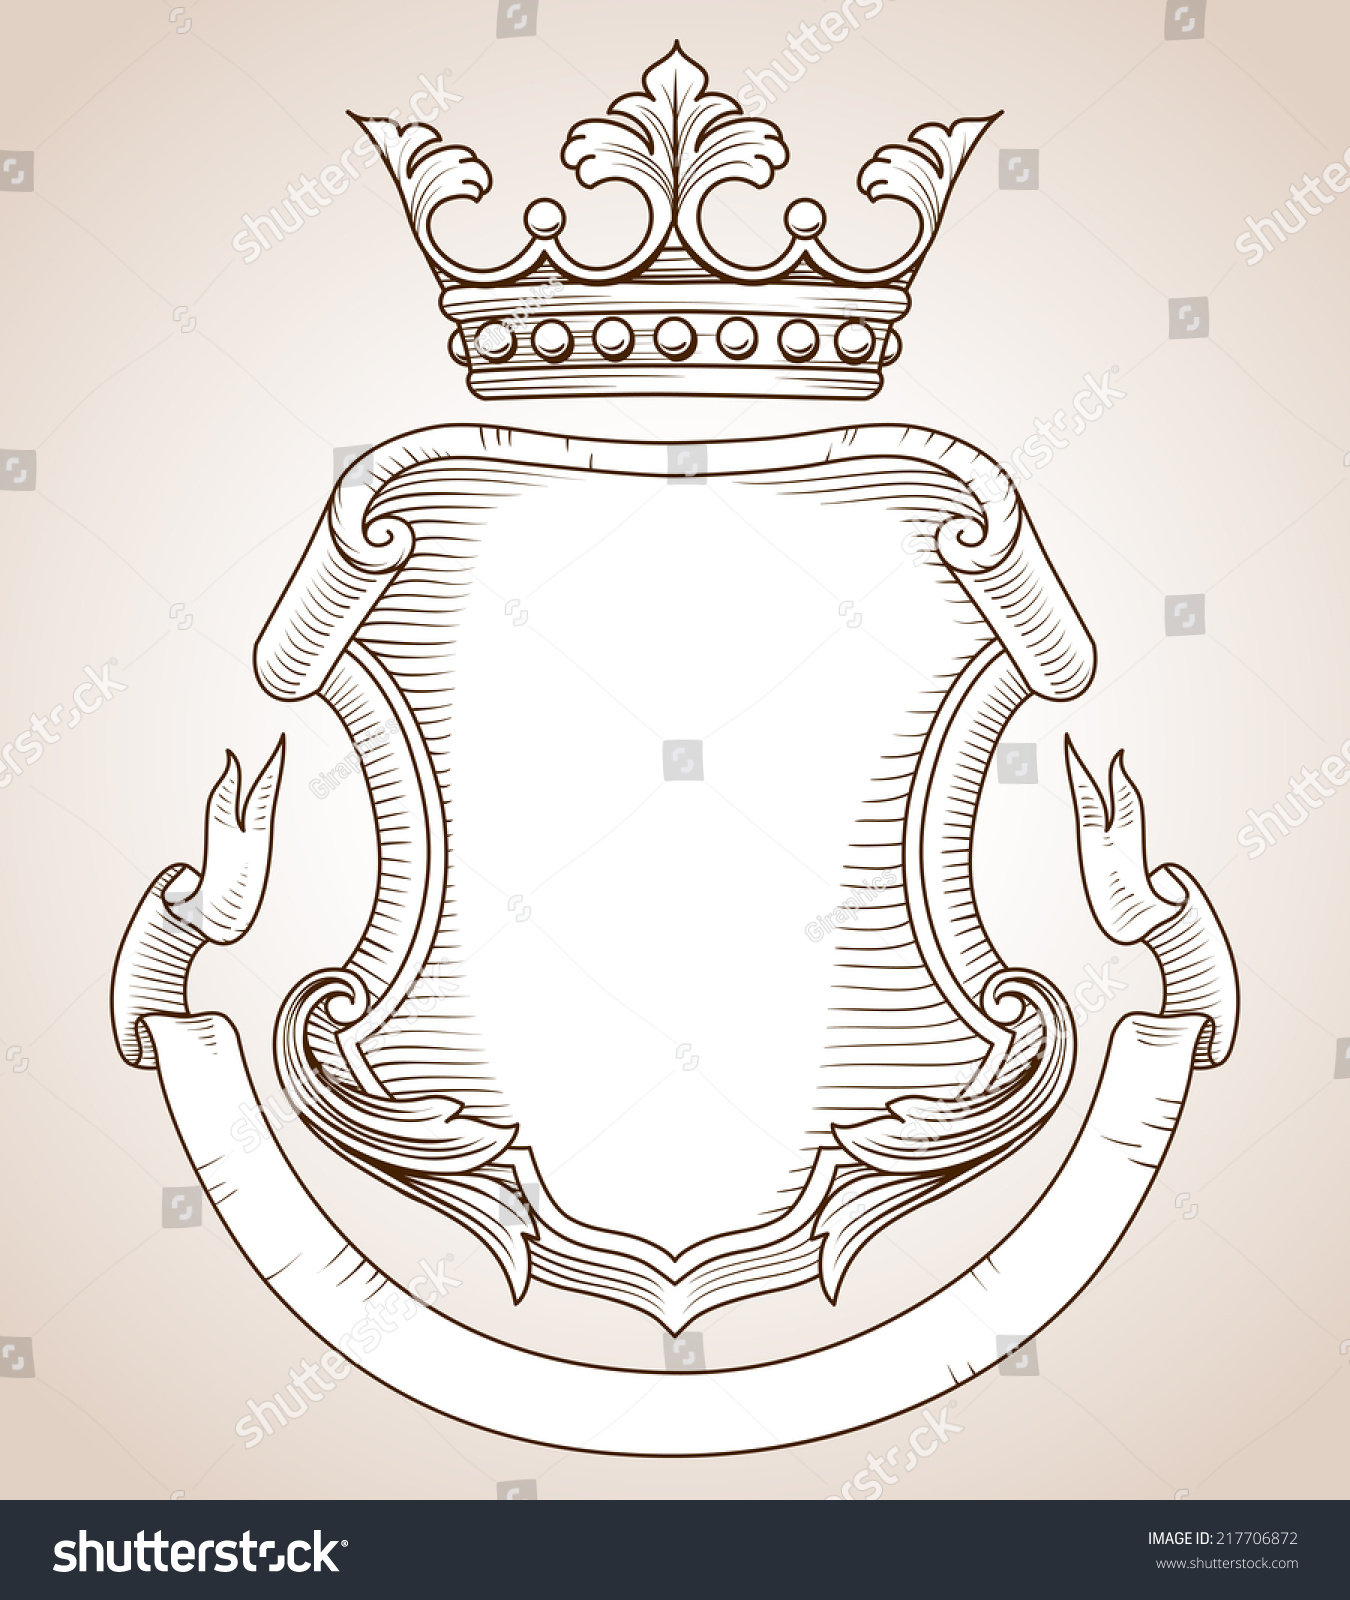 Coat Arms Handdrawn Highly Detailed Coat Stock Vector